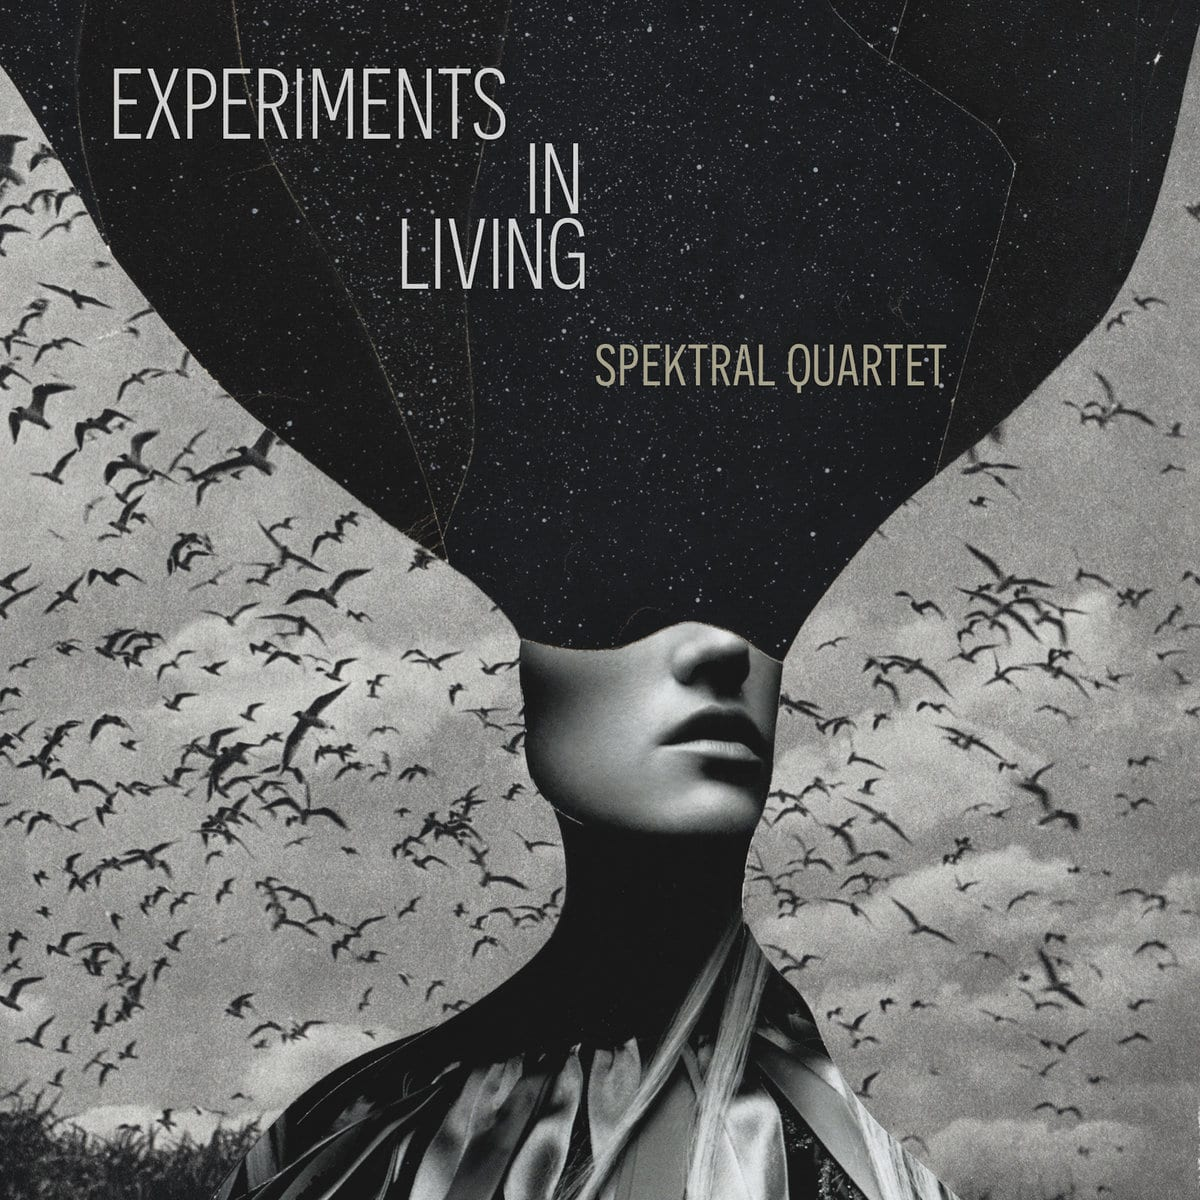 Experiments in Living: Spektral Quartet